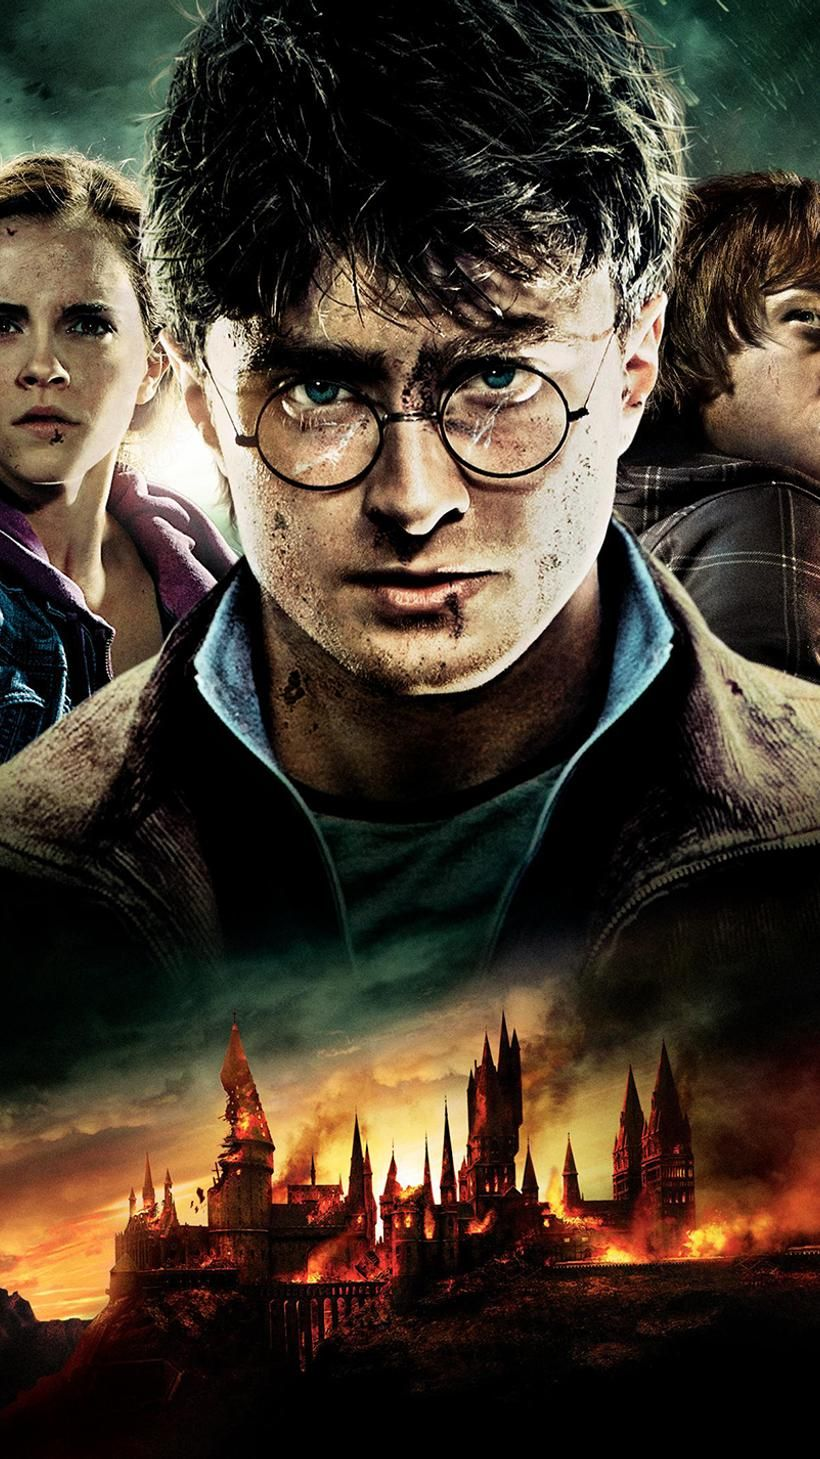 Harry Potter And The Deathly Hallows Part 2 2011 Phone Wallpaper Moviemania Harry Potter Wallpaper Harry Potter Tumblr Harry Potter Artwork